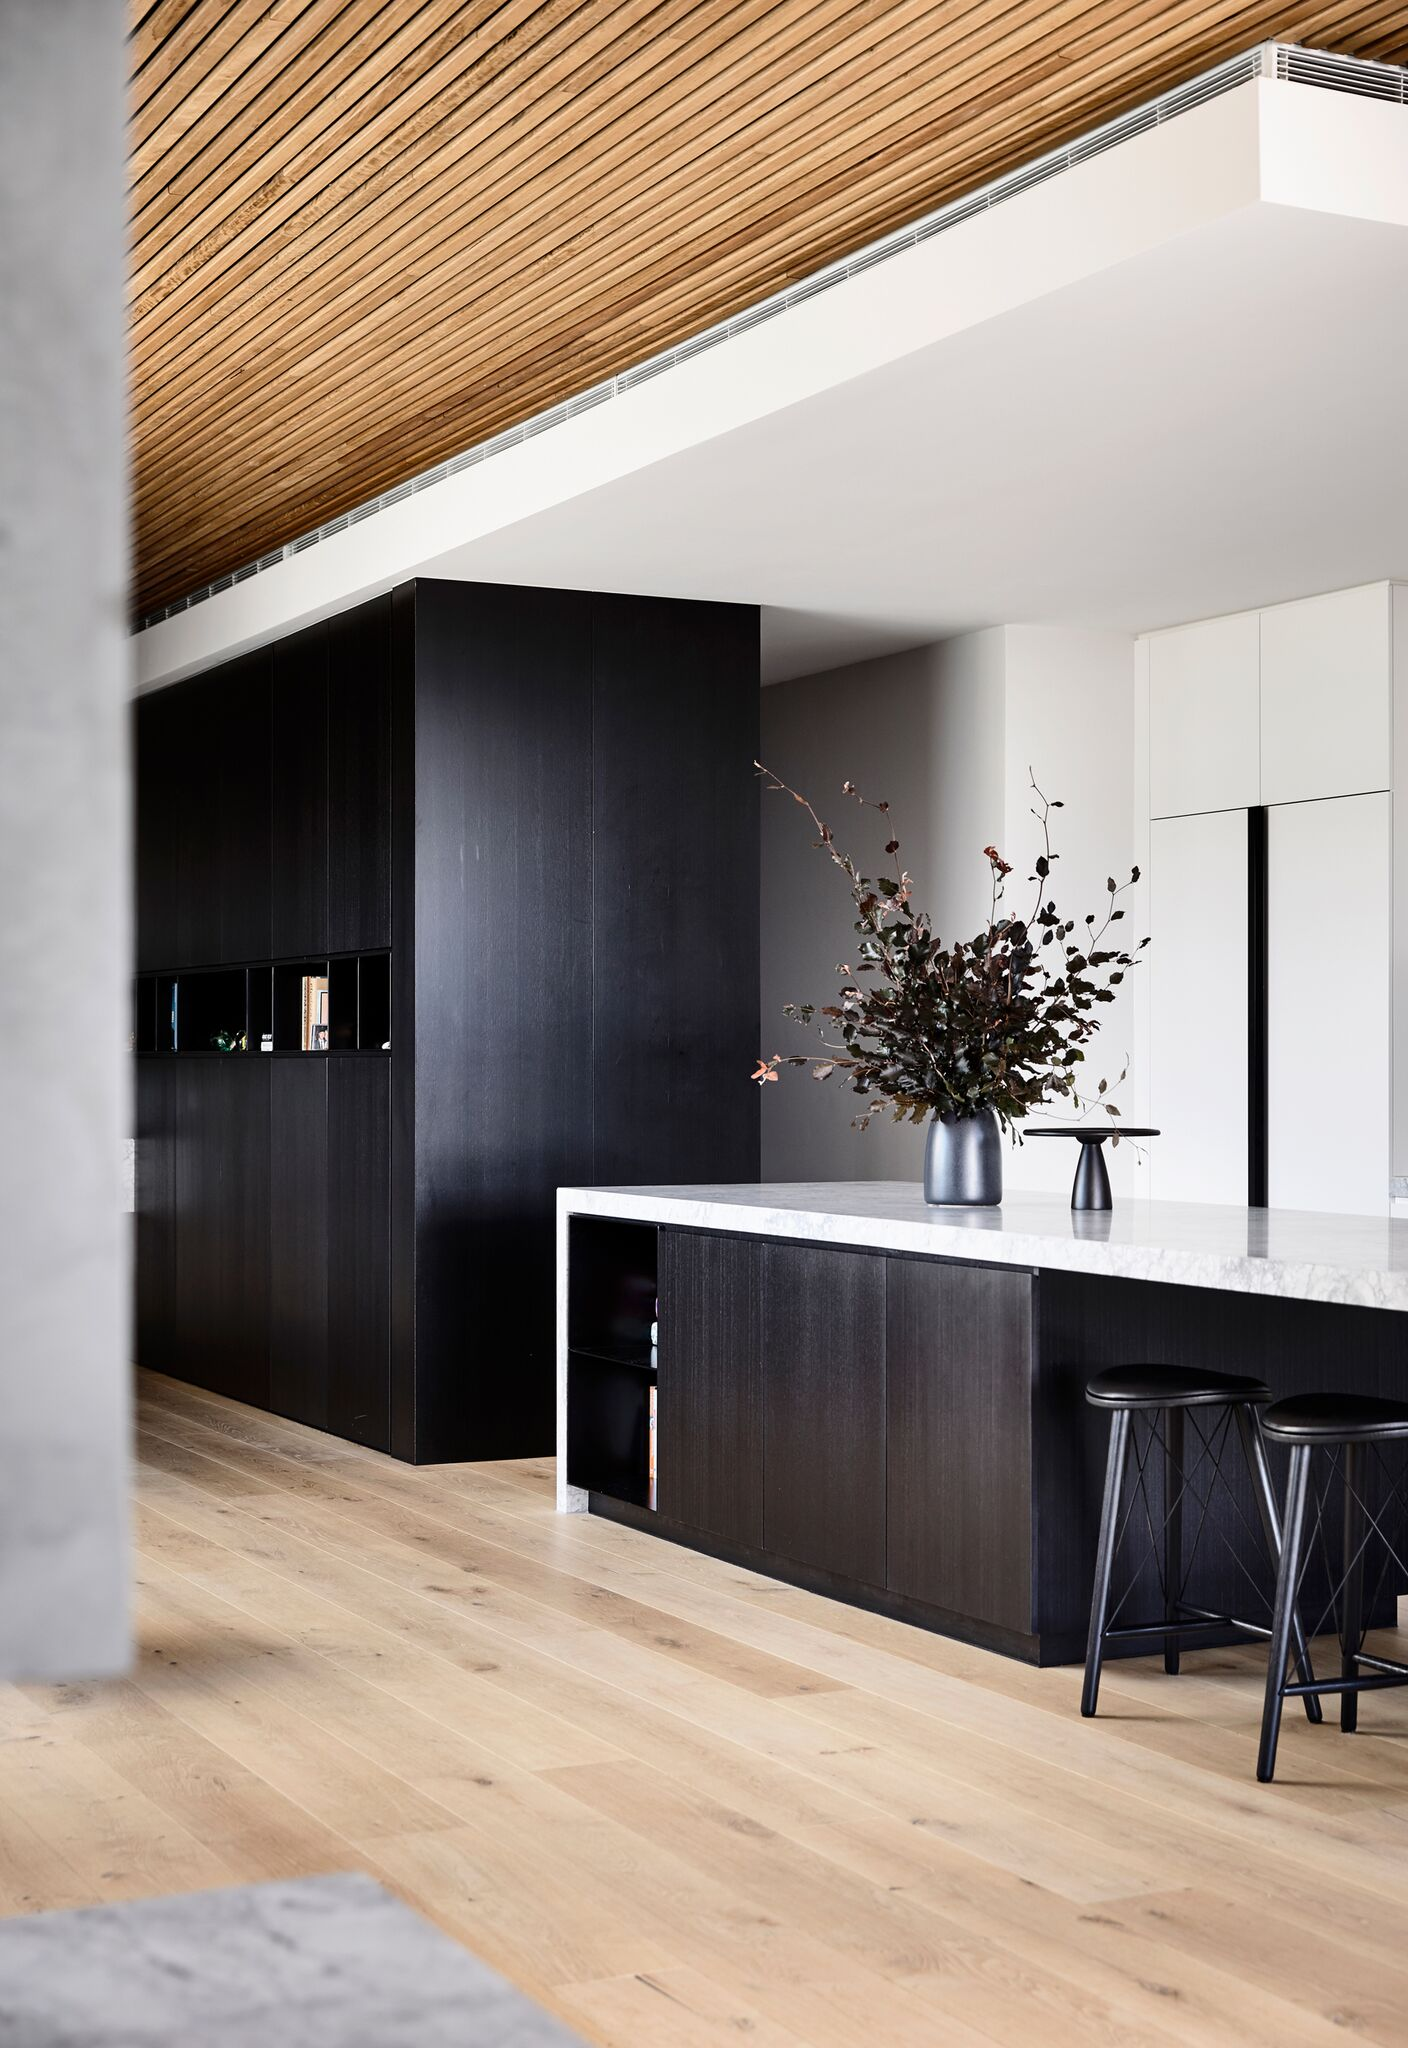 Gallery Of Holly Penthouse By Tom Robertson Architects Local Australian Bespoke Architecture & Interiors Melbourne, Vic Image 6